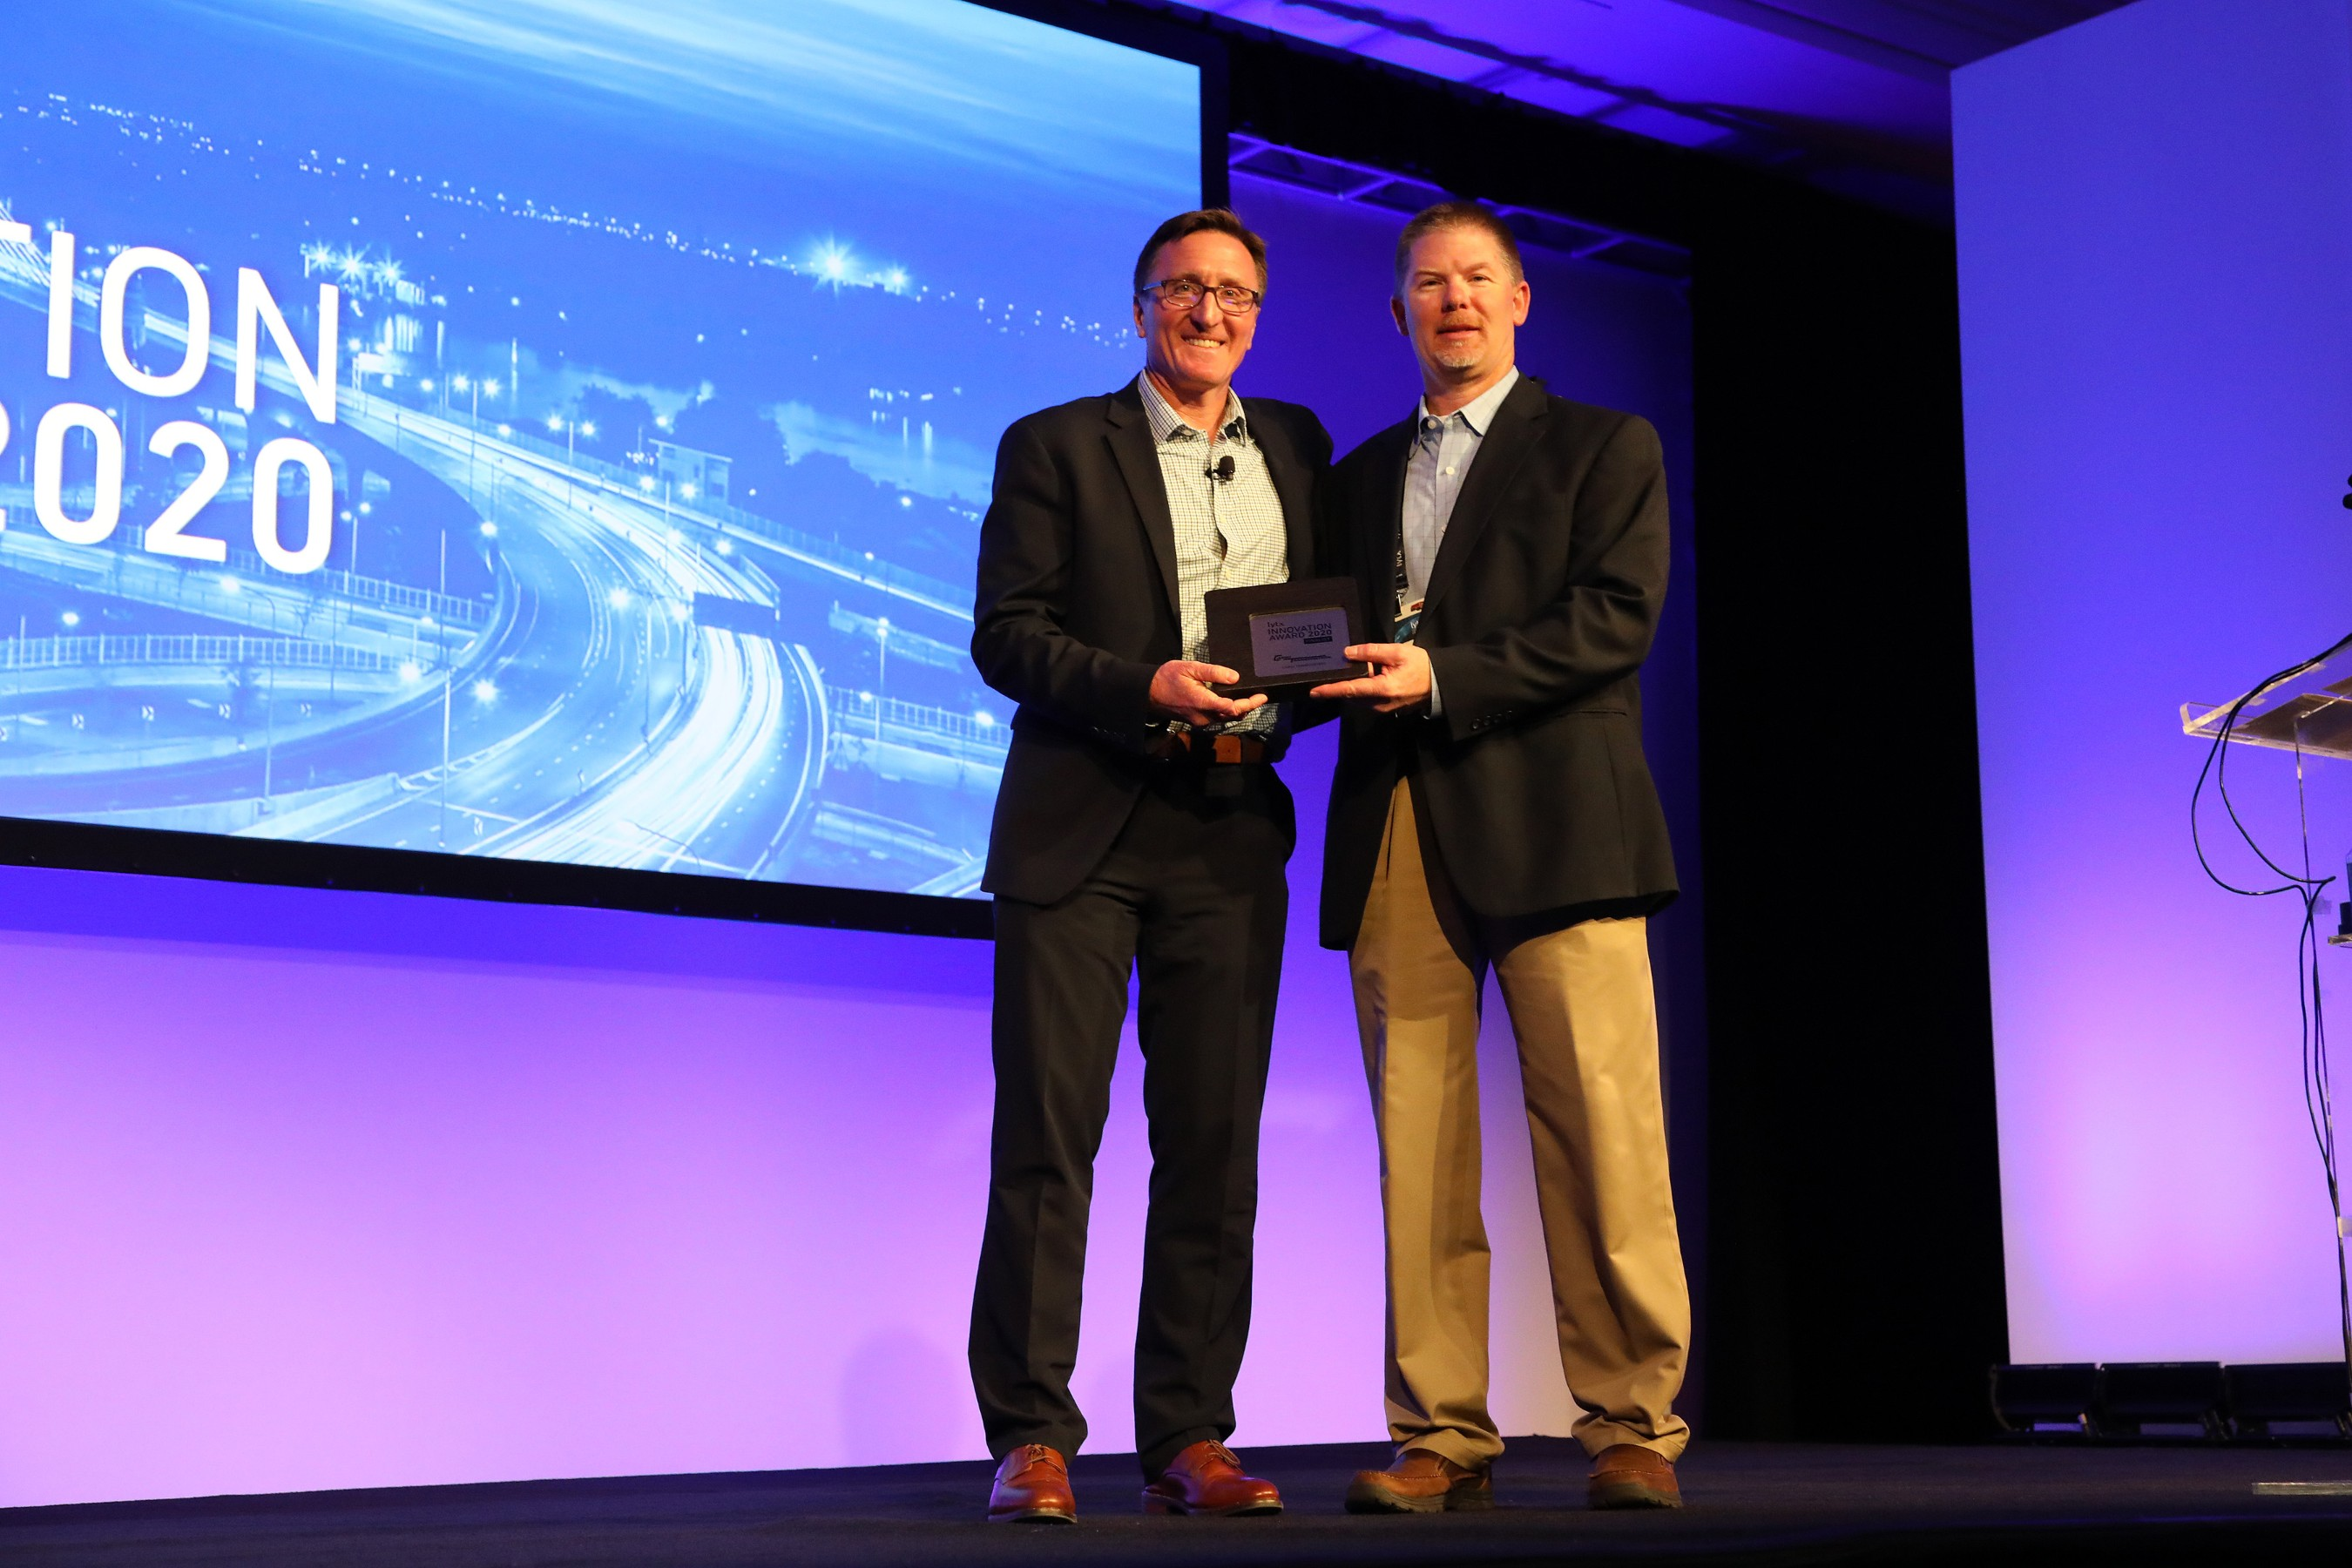 Jerry Sigmon, Jr., Chief Operating Officer, Cargo Transporters, recognized as a finalist in the 2020 Lytx Innovation Awards by Dave Riordan, Lytx EVP and Chief Client Officer.